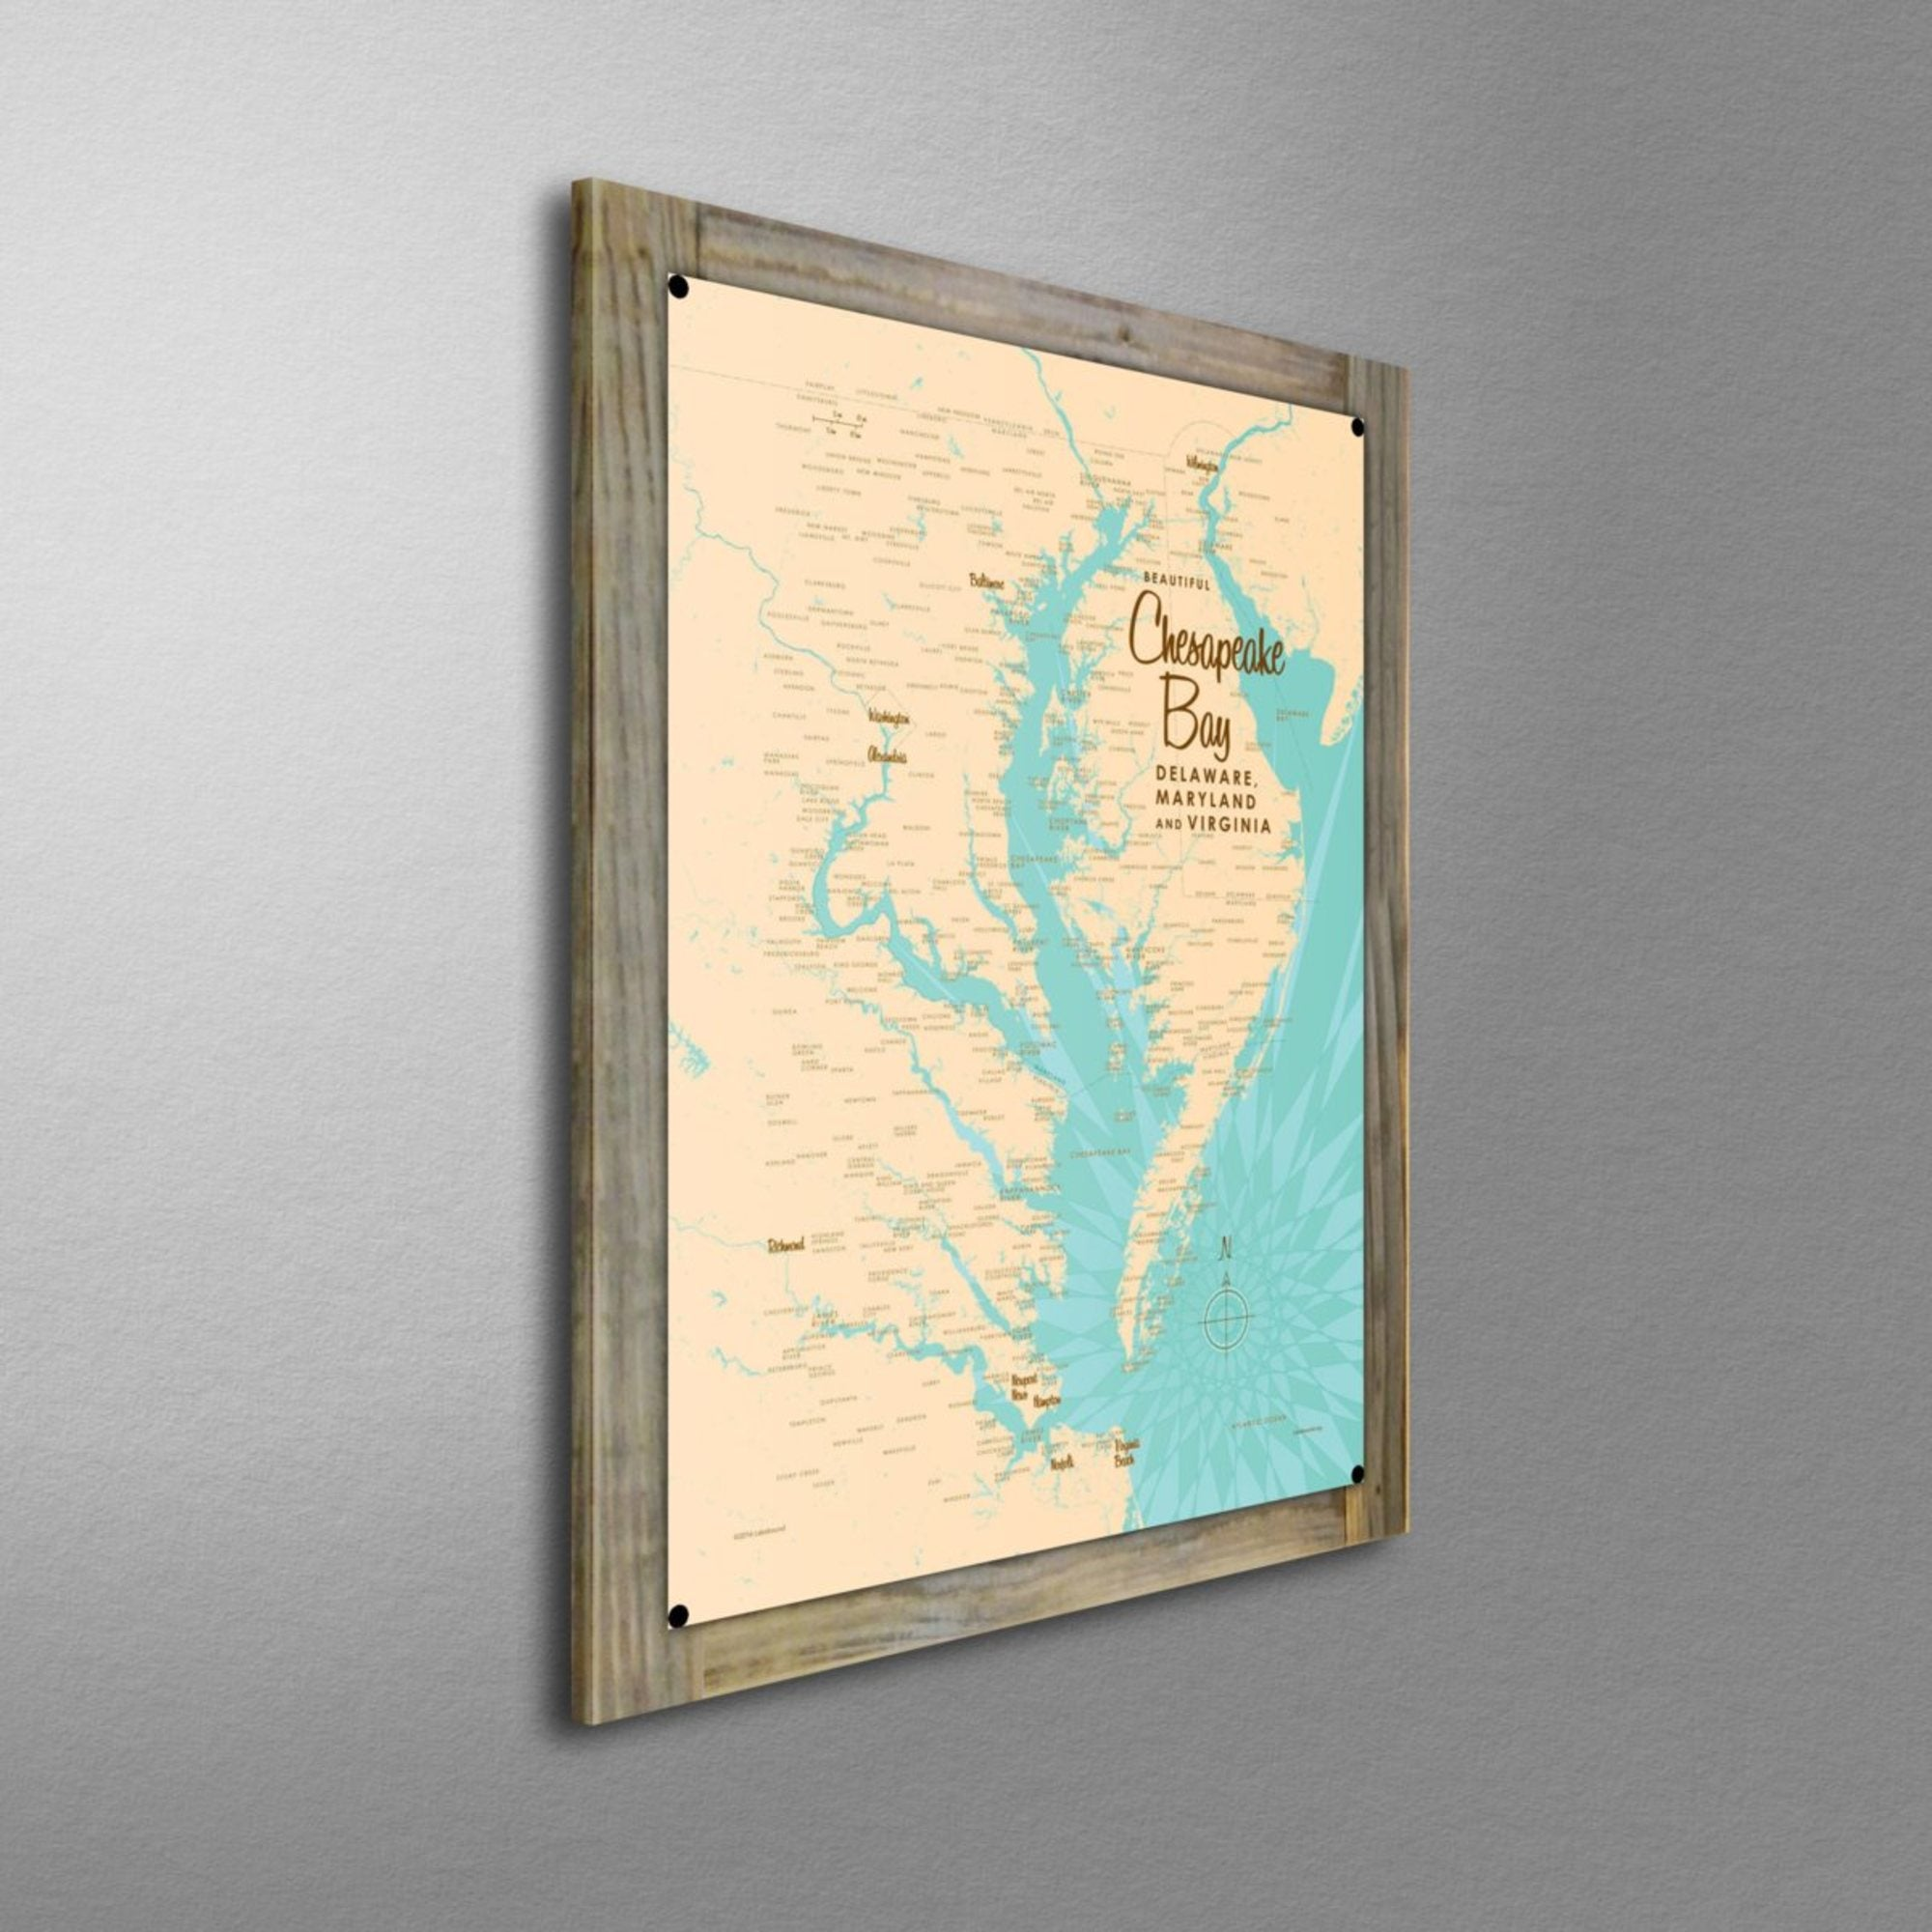 Chesapeake Bay MD Virginia, Wood-Mounted Metal Sign Map Art